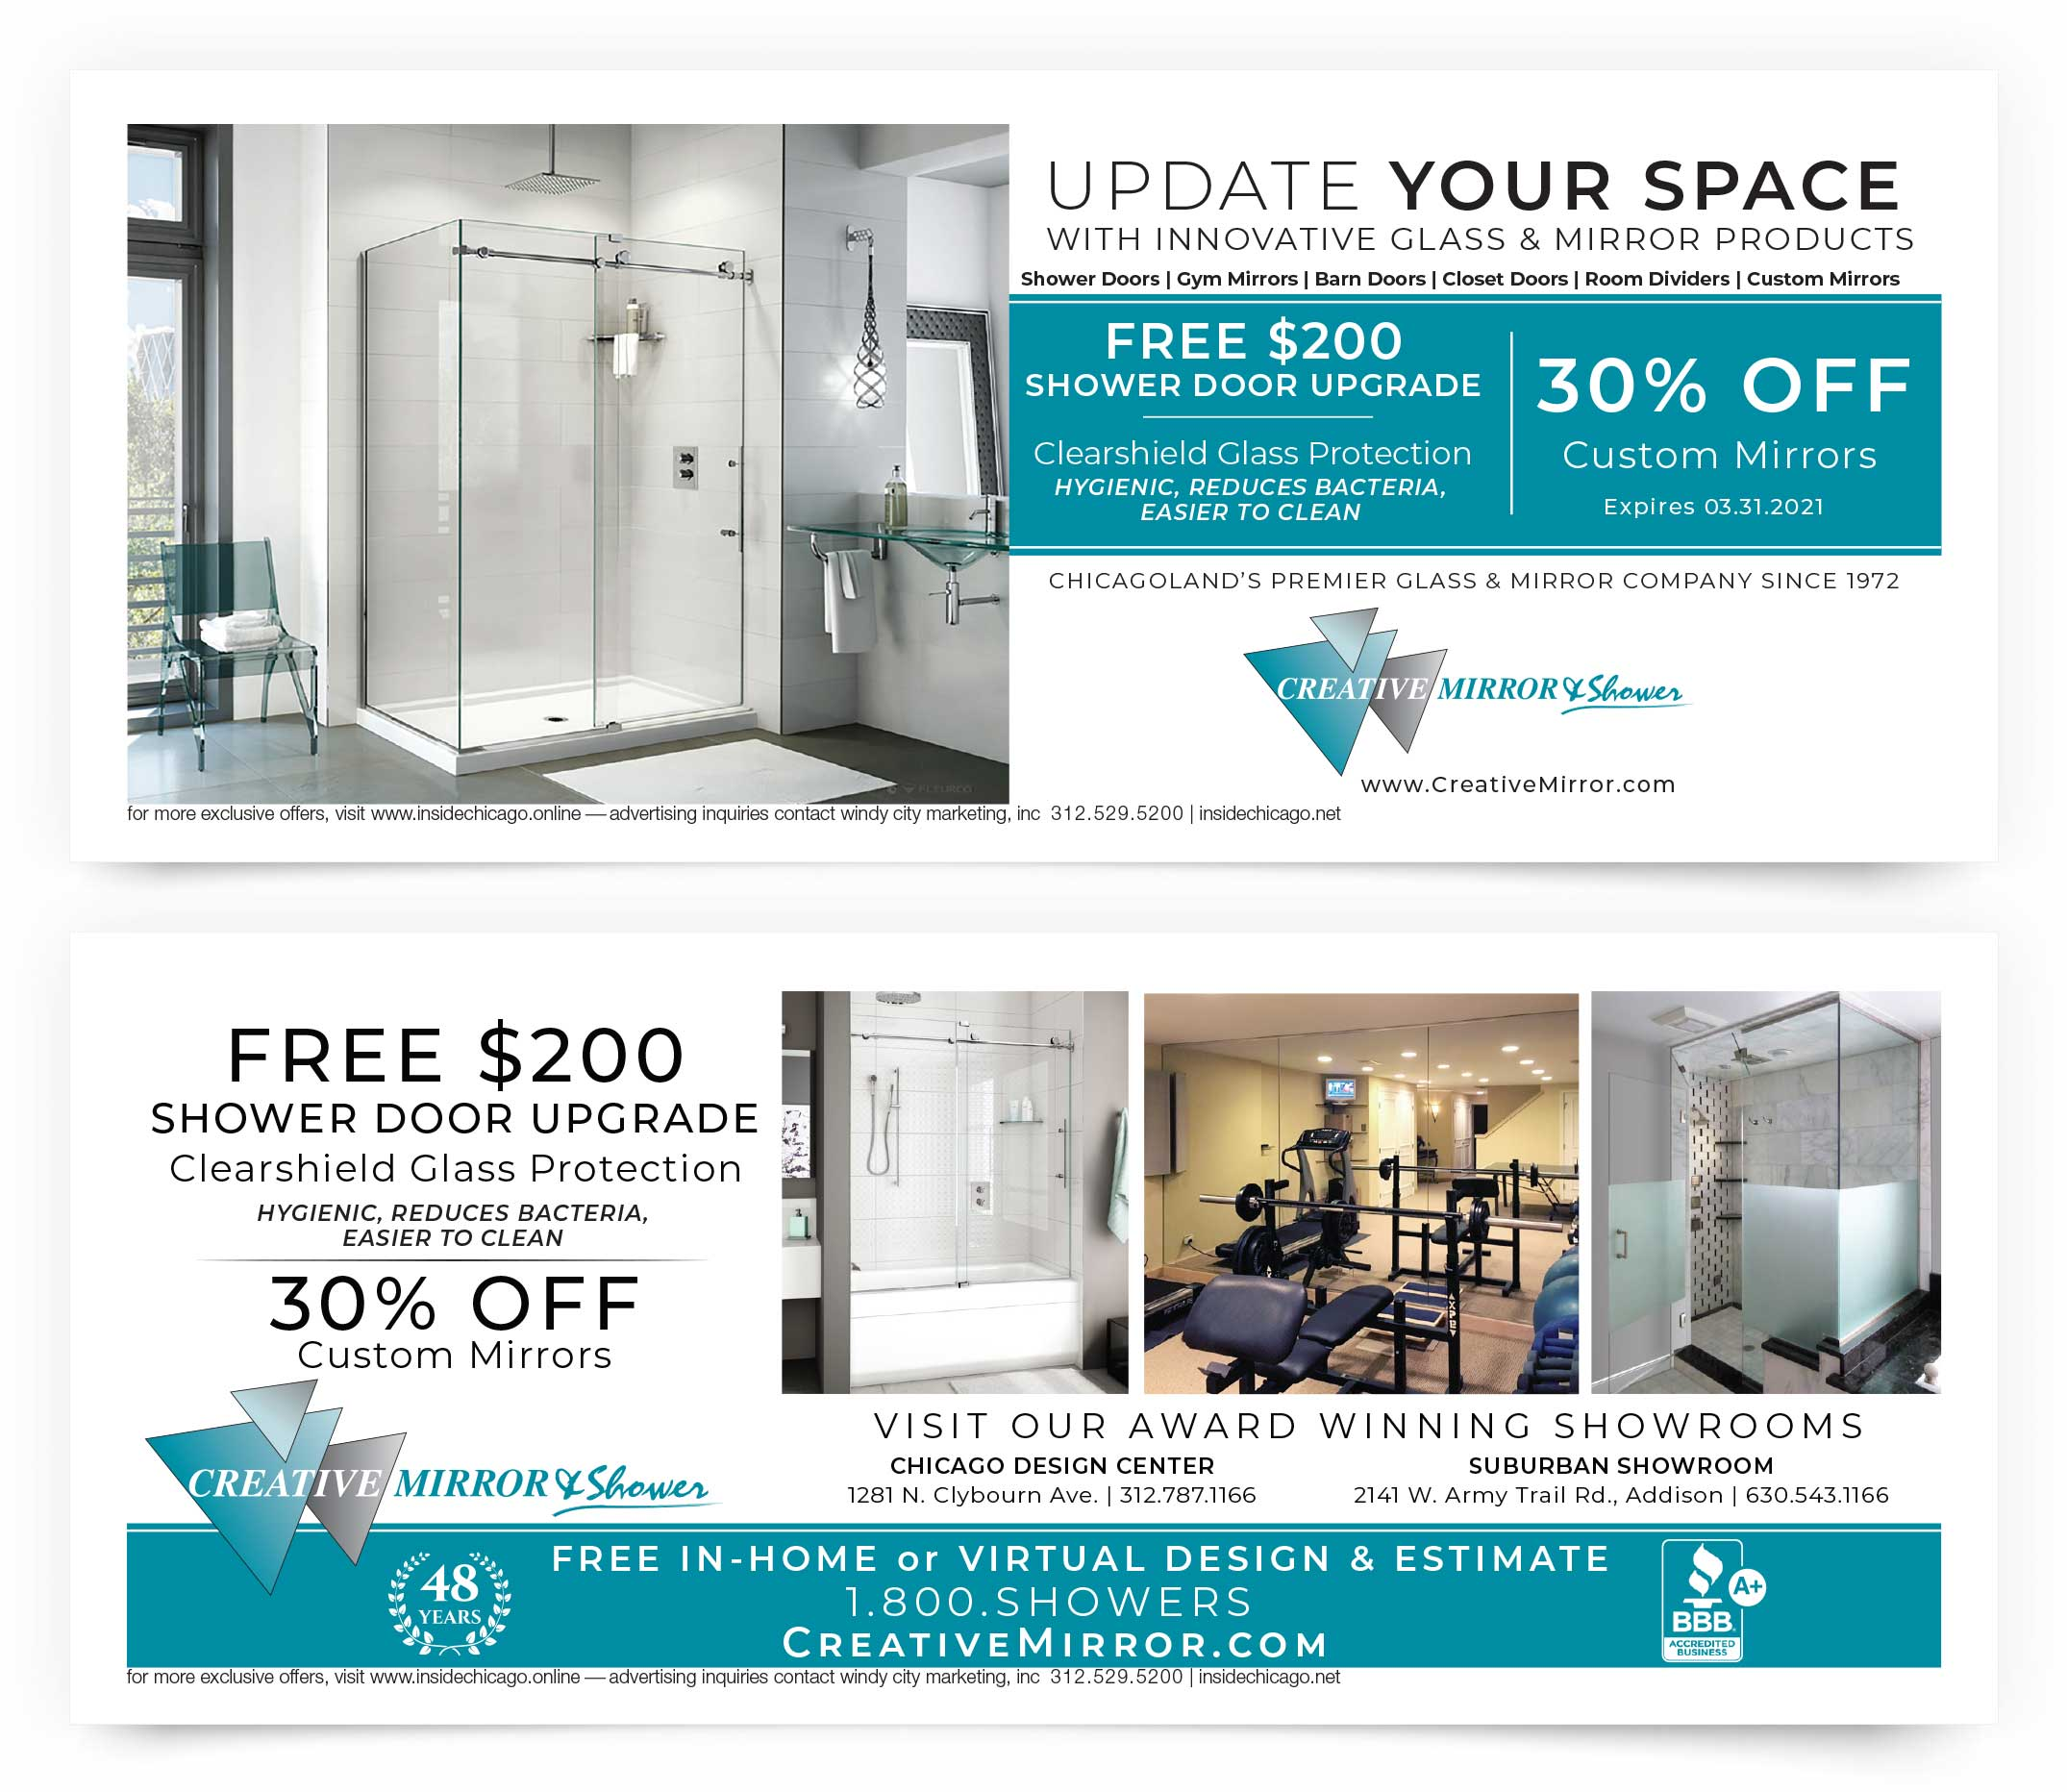 Creative Mirror Shower Coupons